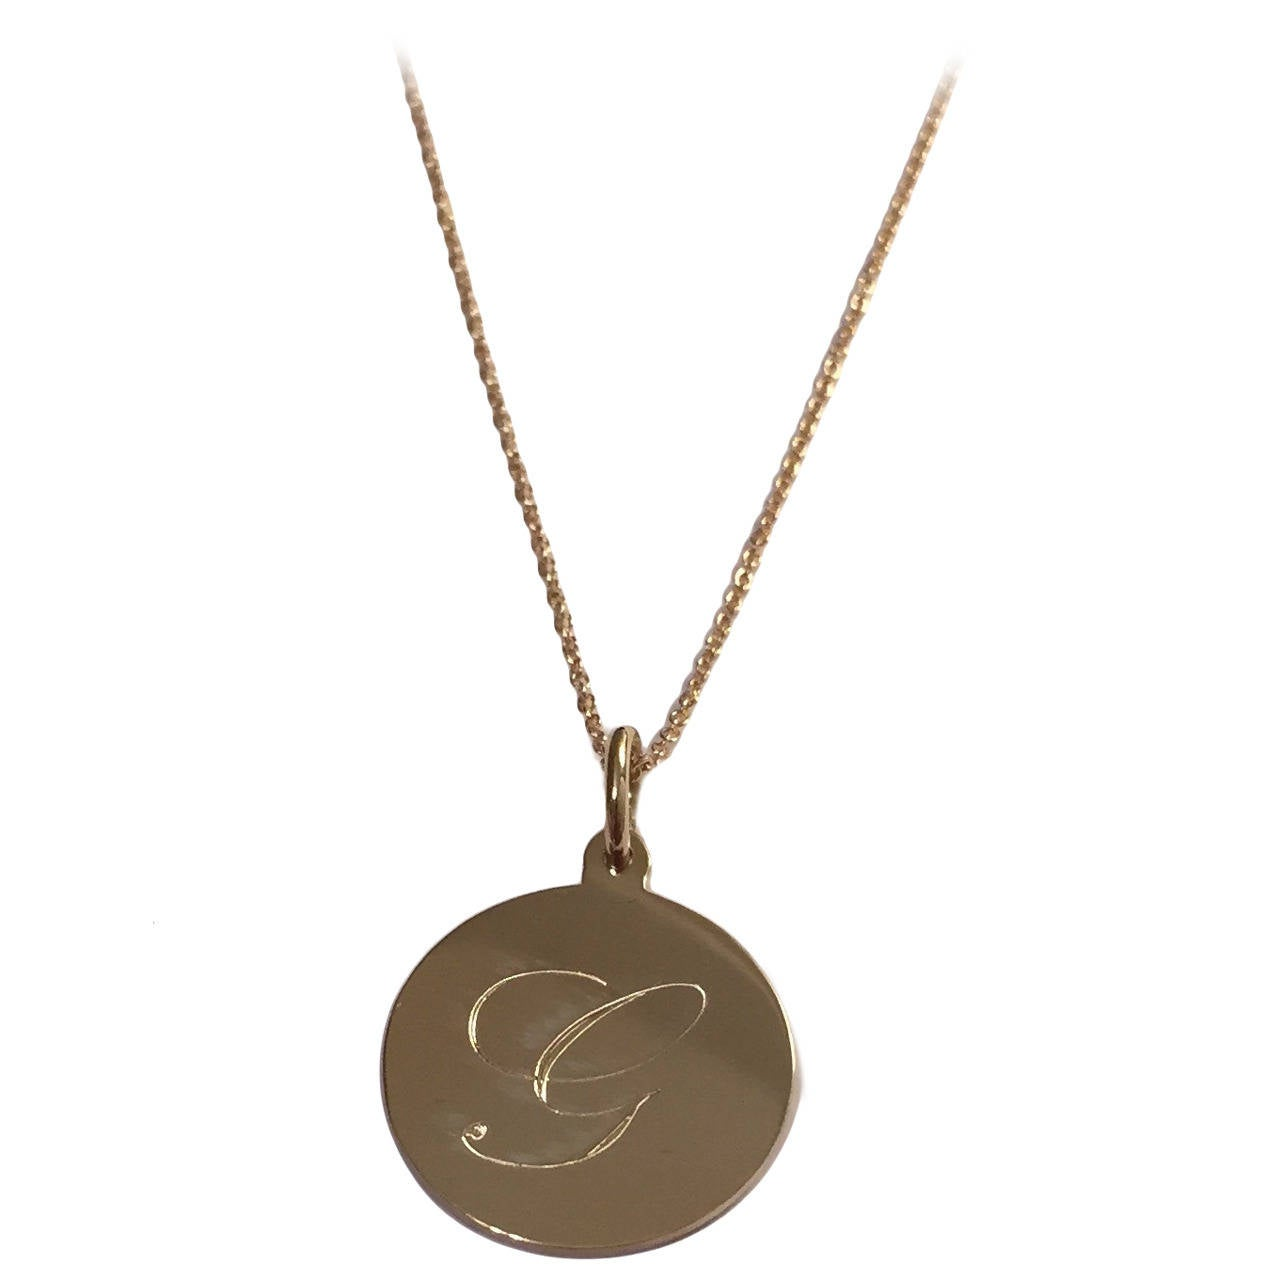 beautiful personalized engraved gold circle pendant and